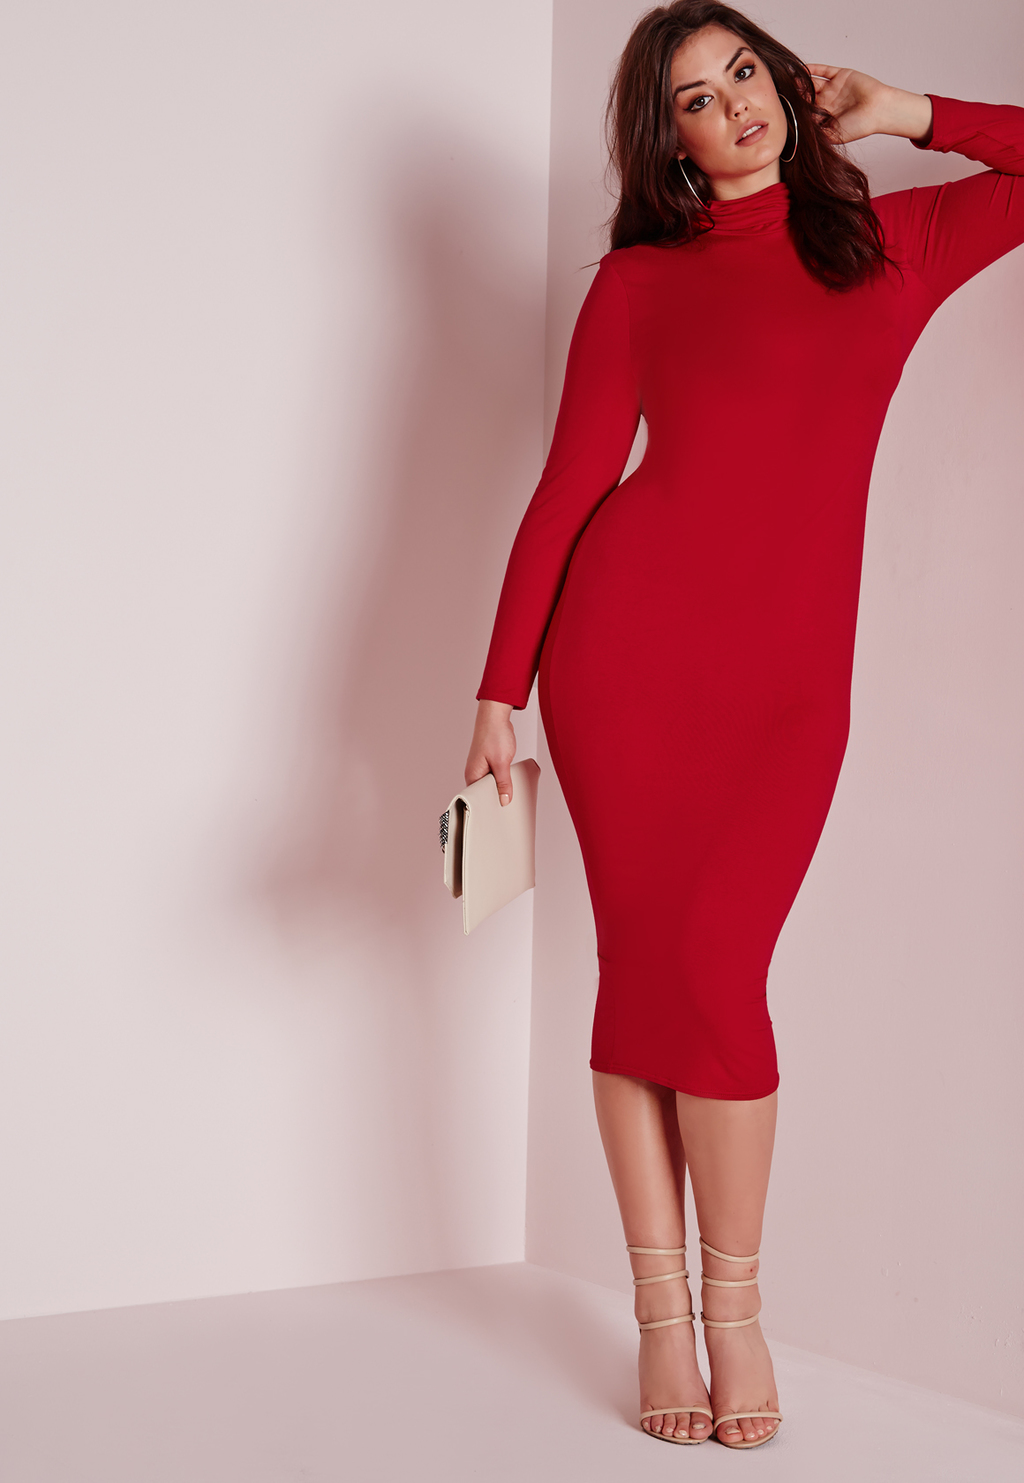 Plus Size Roll Neck Longline Jersey Dress Red, Red - length: below the knee; fit: tight; pattern: plain; neckline: high neck; style: bodycon; predominant colour: true red; occasions: evening; fibres: viscose/rayon - stretch; sleeve length: long sleeve; sleeve style: standard; pattern type: fabric; texture group: jersey - stretchy/drapey; season: s/s 2016; wardrobe: event